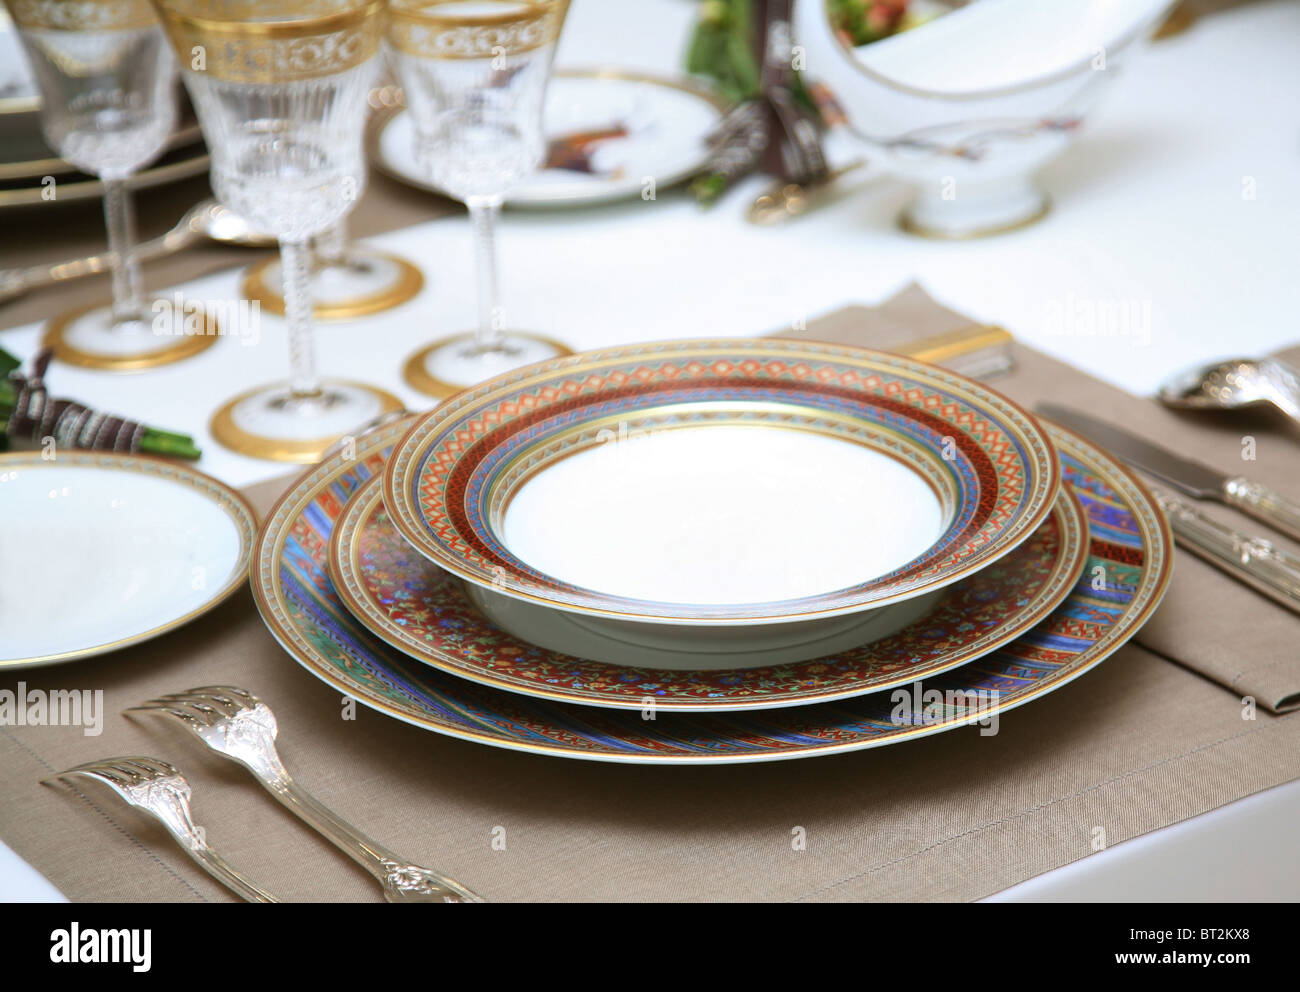 Refined table setting. - Stock Image